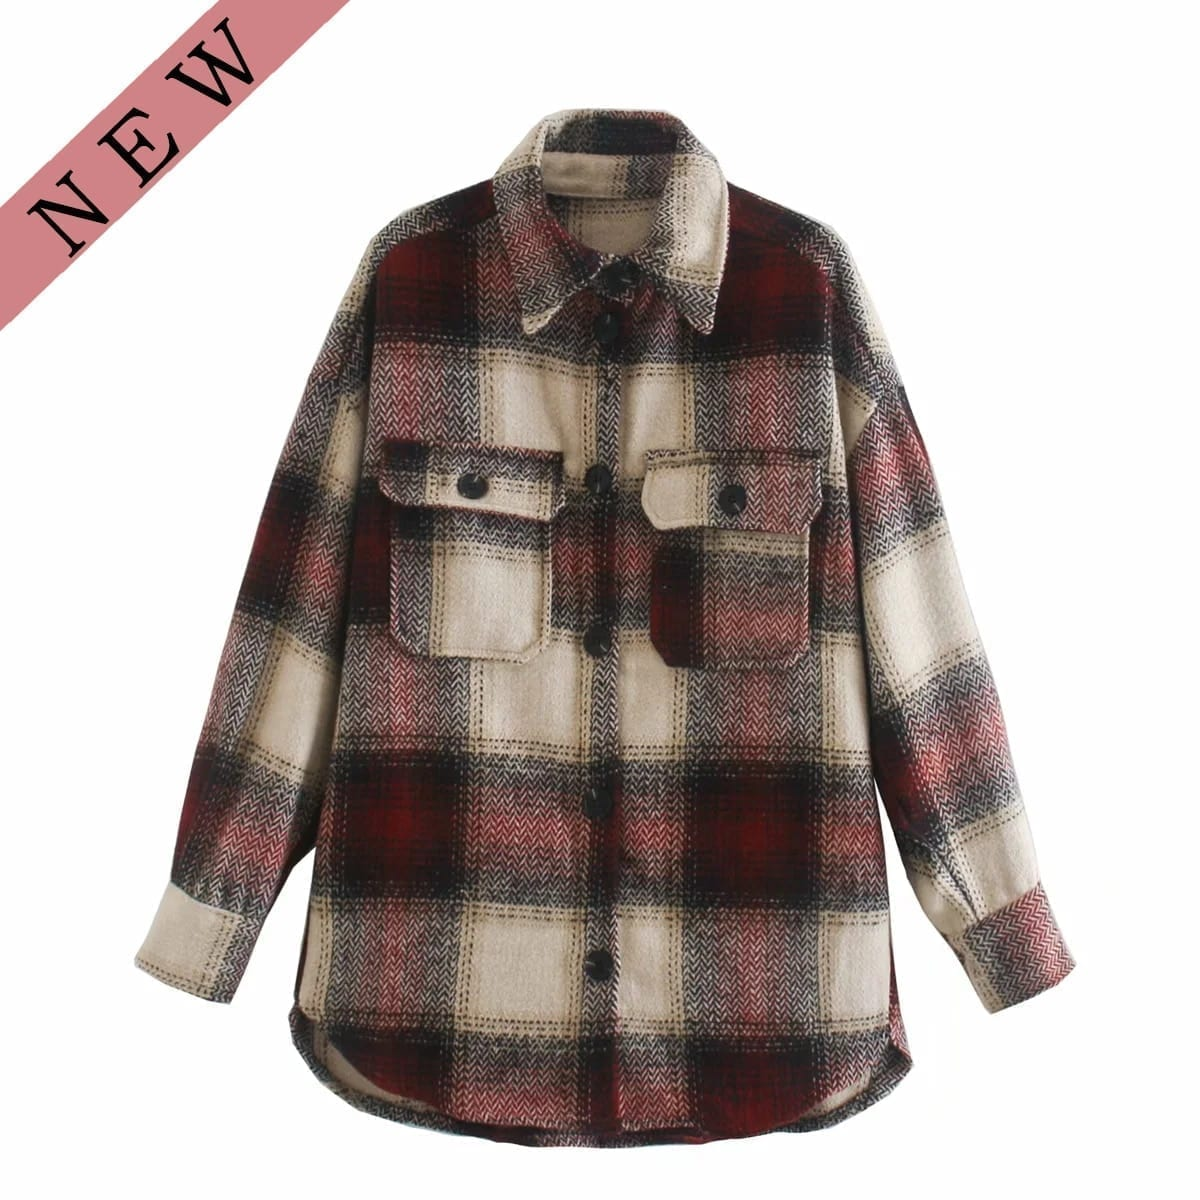 Vintage women 2020 long sleeve woolen coats fashion ladies thick plaid coat female streetwear elegant girls oversize jacket chic